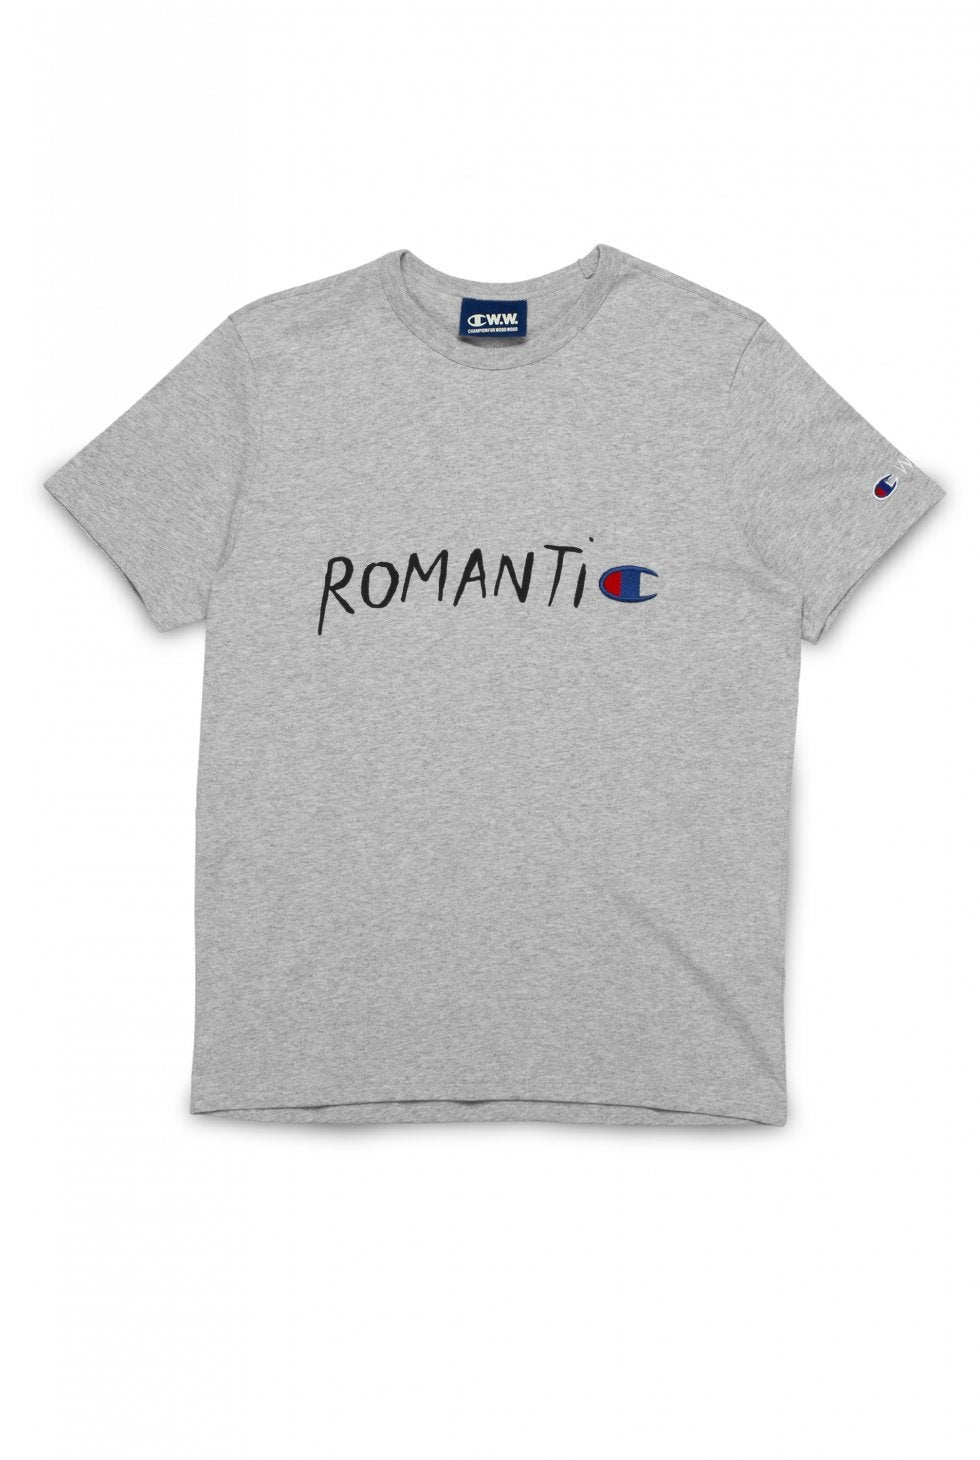 Image of CHAMPION X WOOD WOOD ROMANTIC CREWNECK T-SHIRT